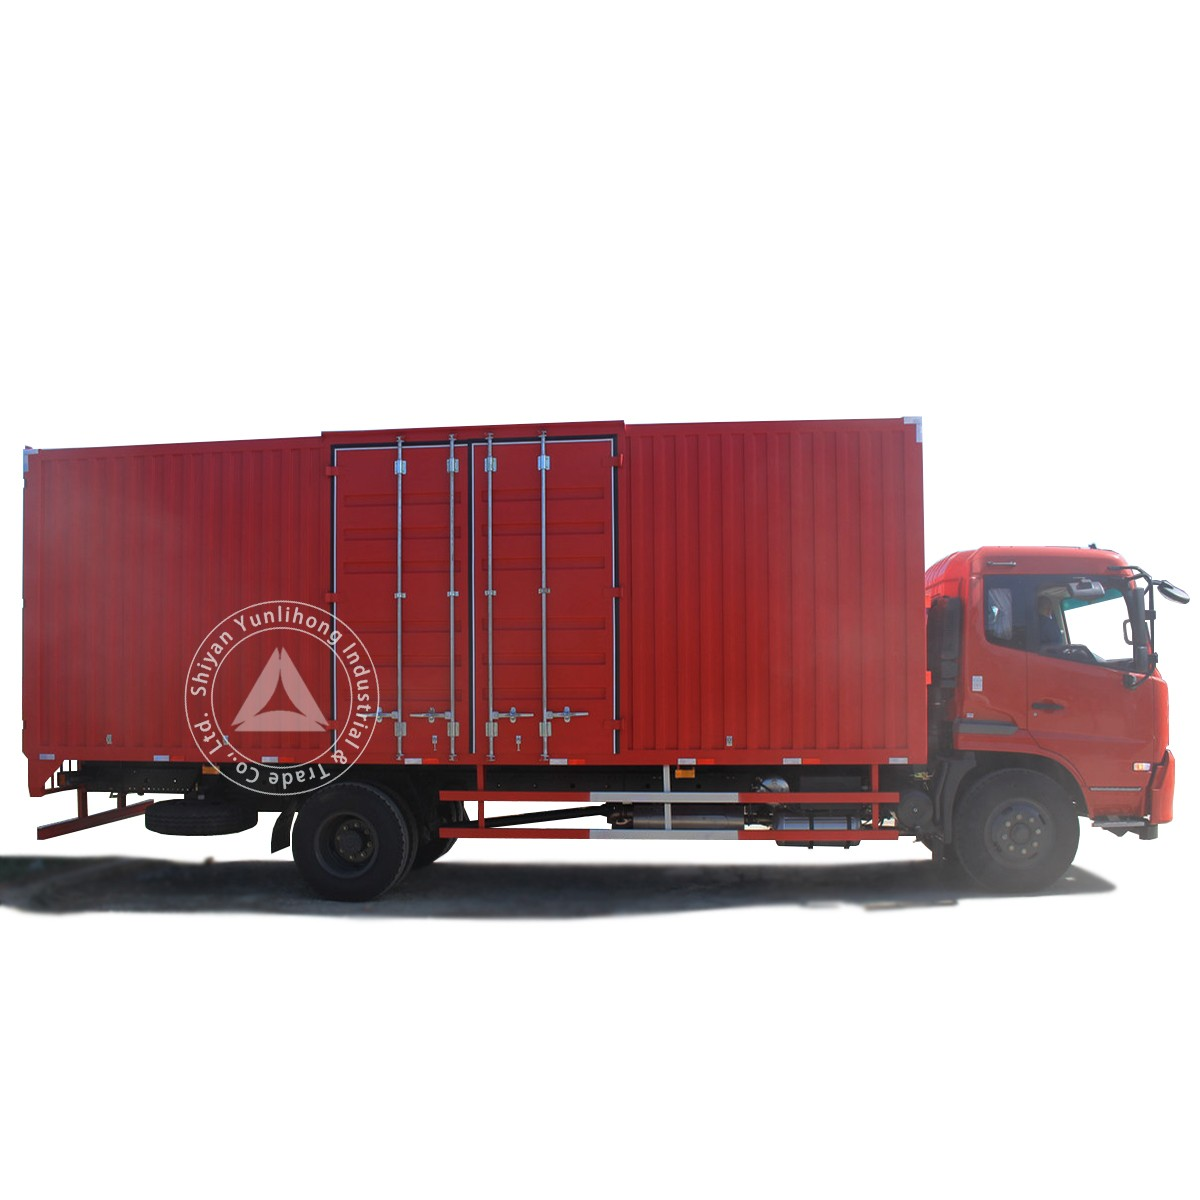 Dongfeng KR 4x2 GVW 13.5 Ton City Distribution Box TrucK Chassis Manufacturers, Dongfeng KR 4x2 GVW 13.5 Ton City Distribution Box TrucK Chassis Factory, Supply Dongfeng KR 4x2 GVW 13.5 Ton City Distribution Box TrucK Chassis